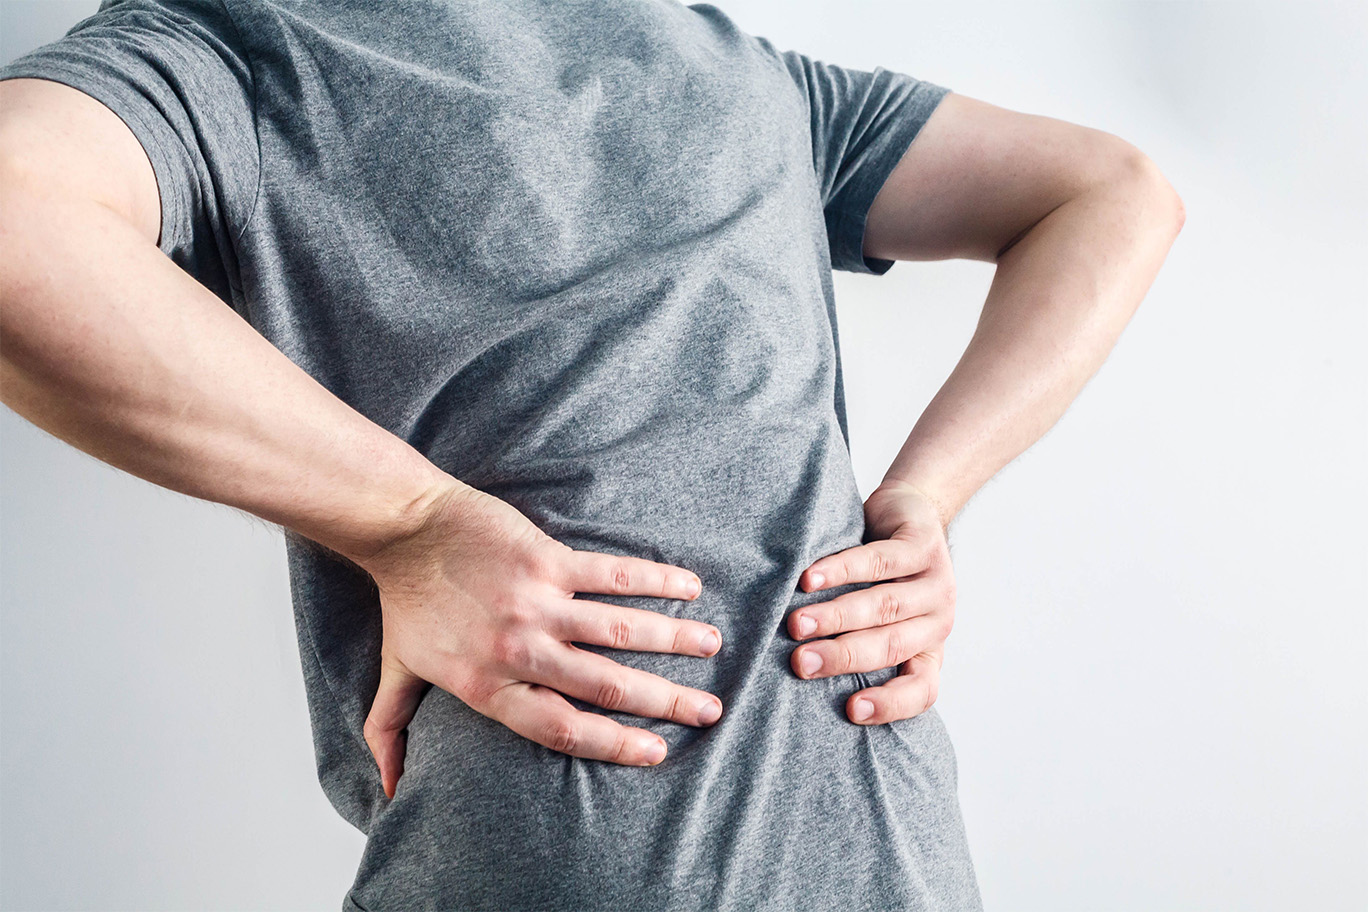 Chiropractor for Low Back Pain Surprise AZ